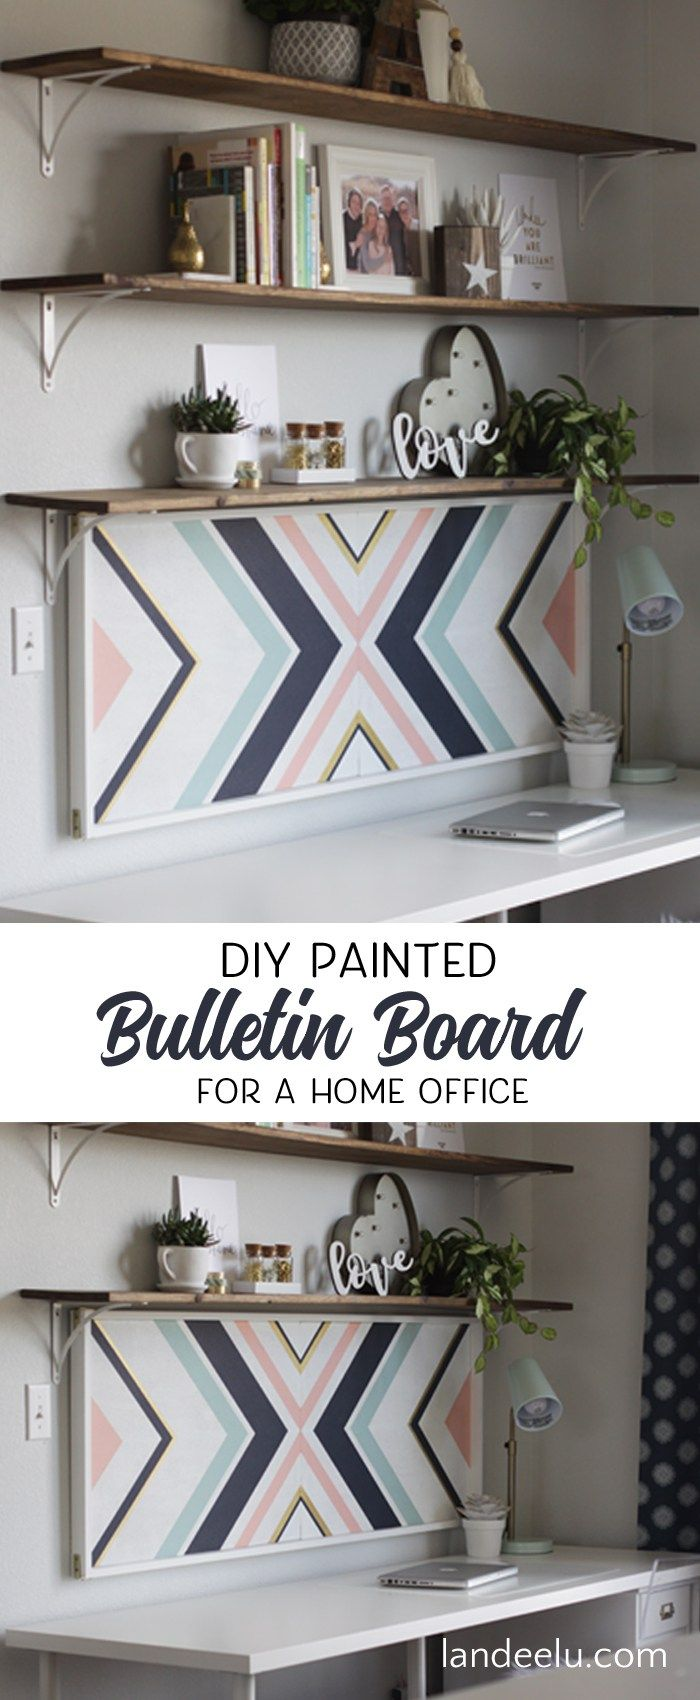 Amazingly Stylish Diy Cork Board You Will Want To Make Pretty And Easy Home Office Or Bedroom Organizer Decor Piece Ll Love Landeelu